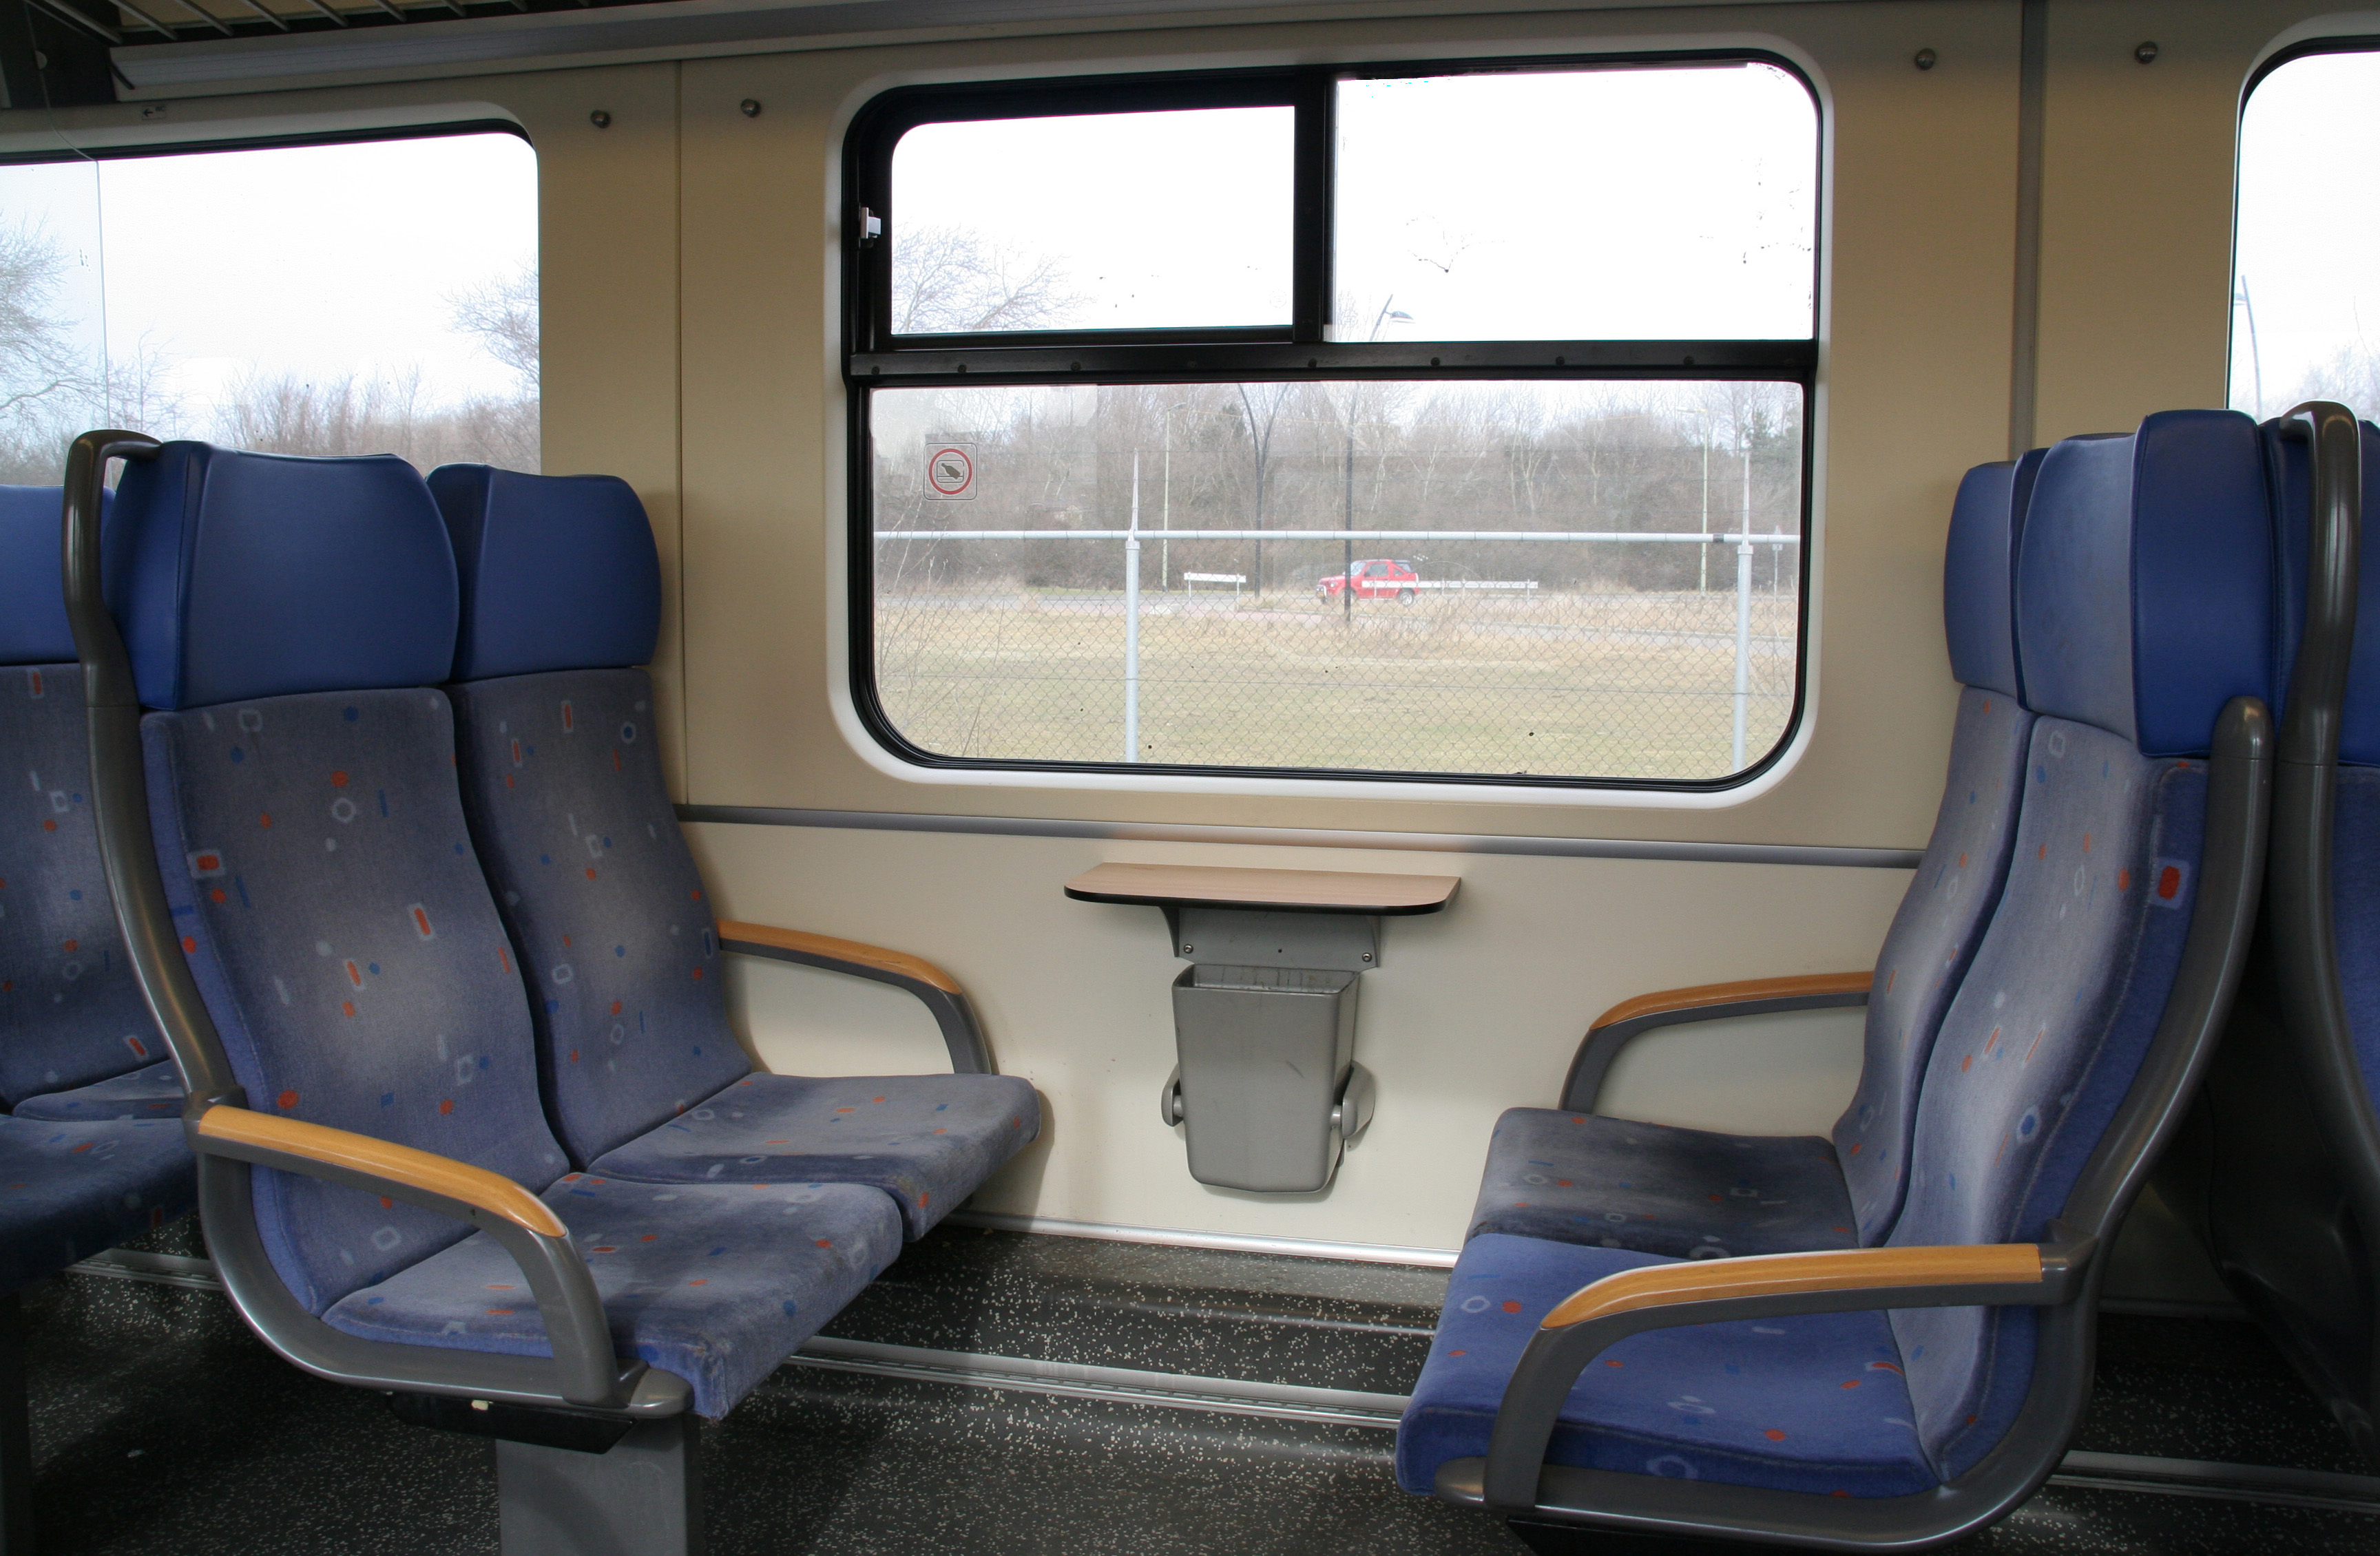 File:Sprinter Interieur 2e klas 2.jpg - Wikimedia Commons